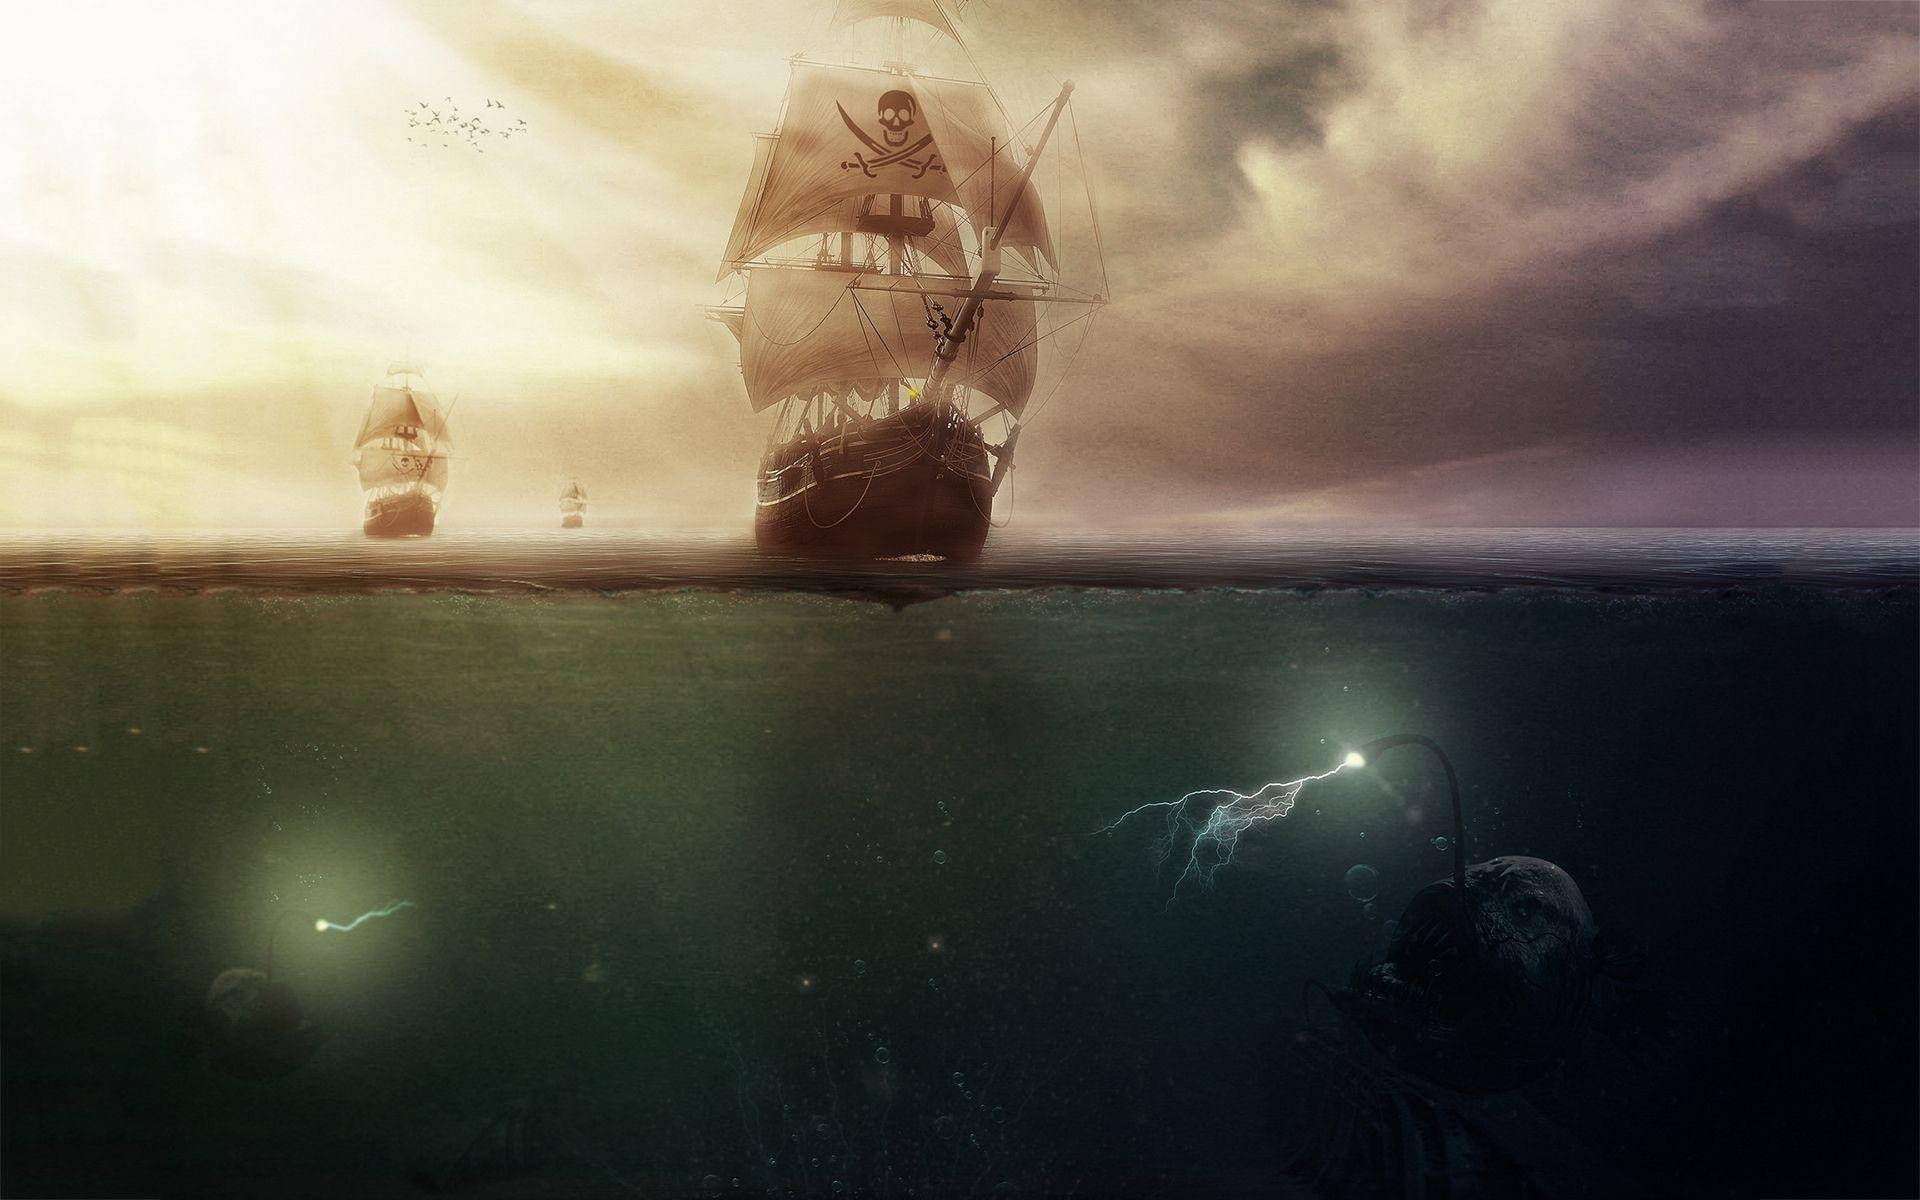 Pirates sea monsters wallpaper | 1920x1200 | #10863